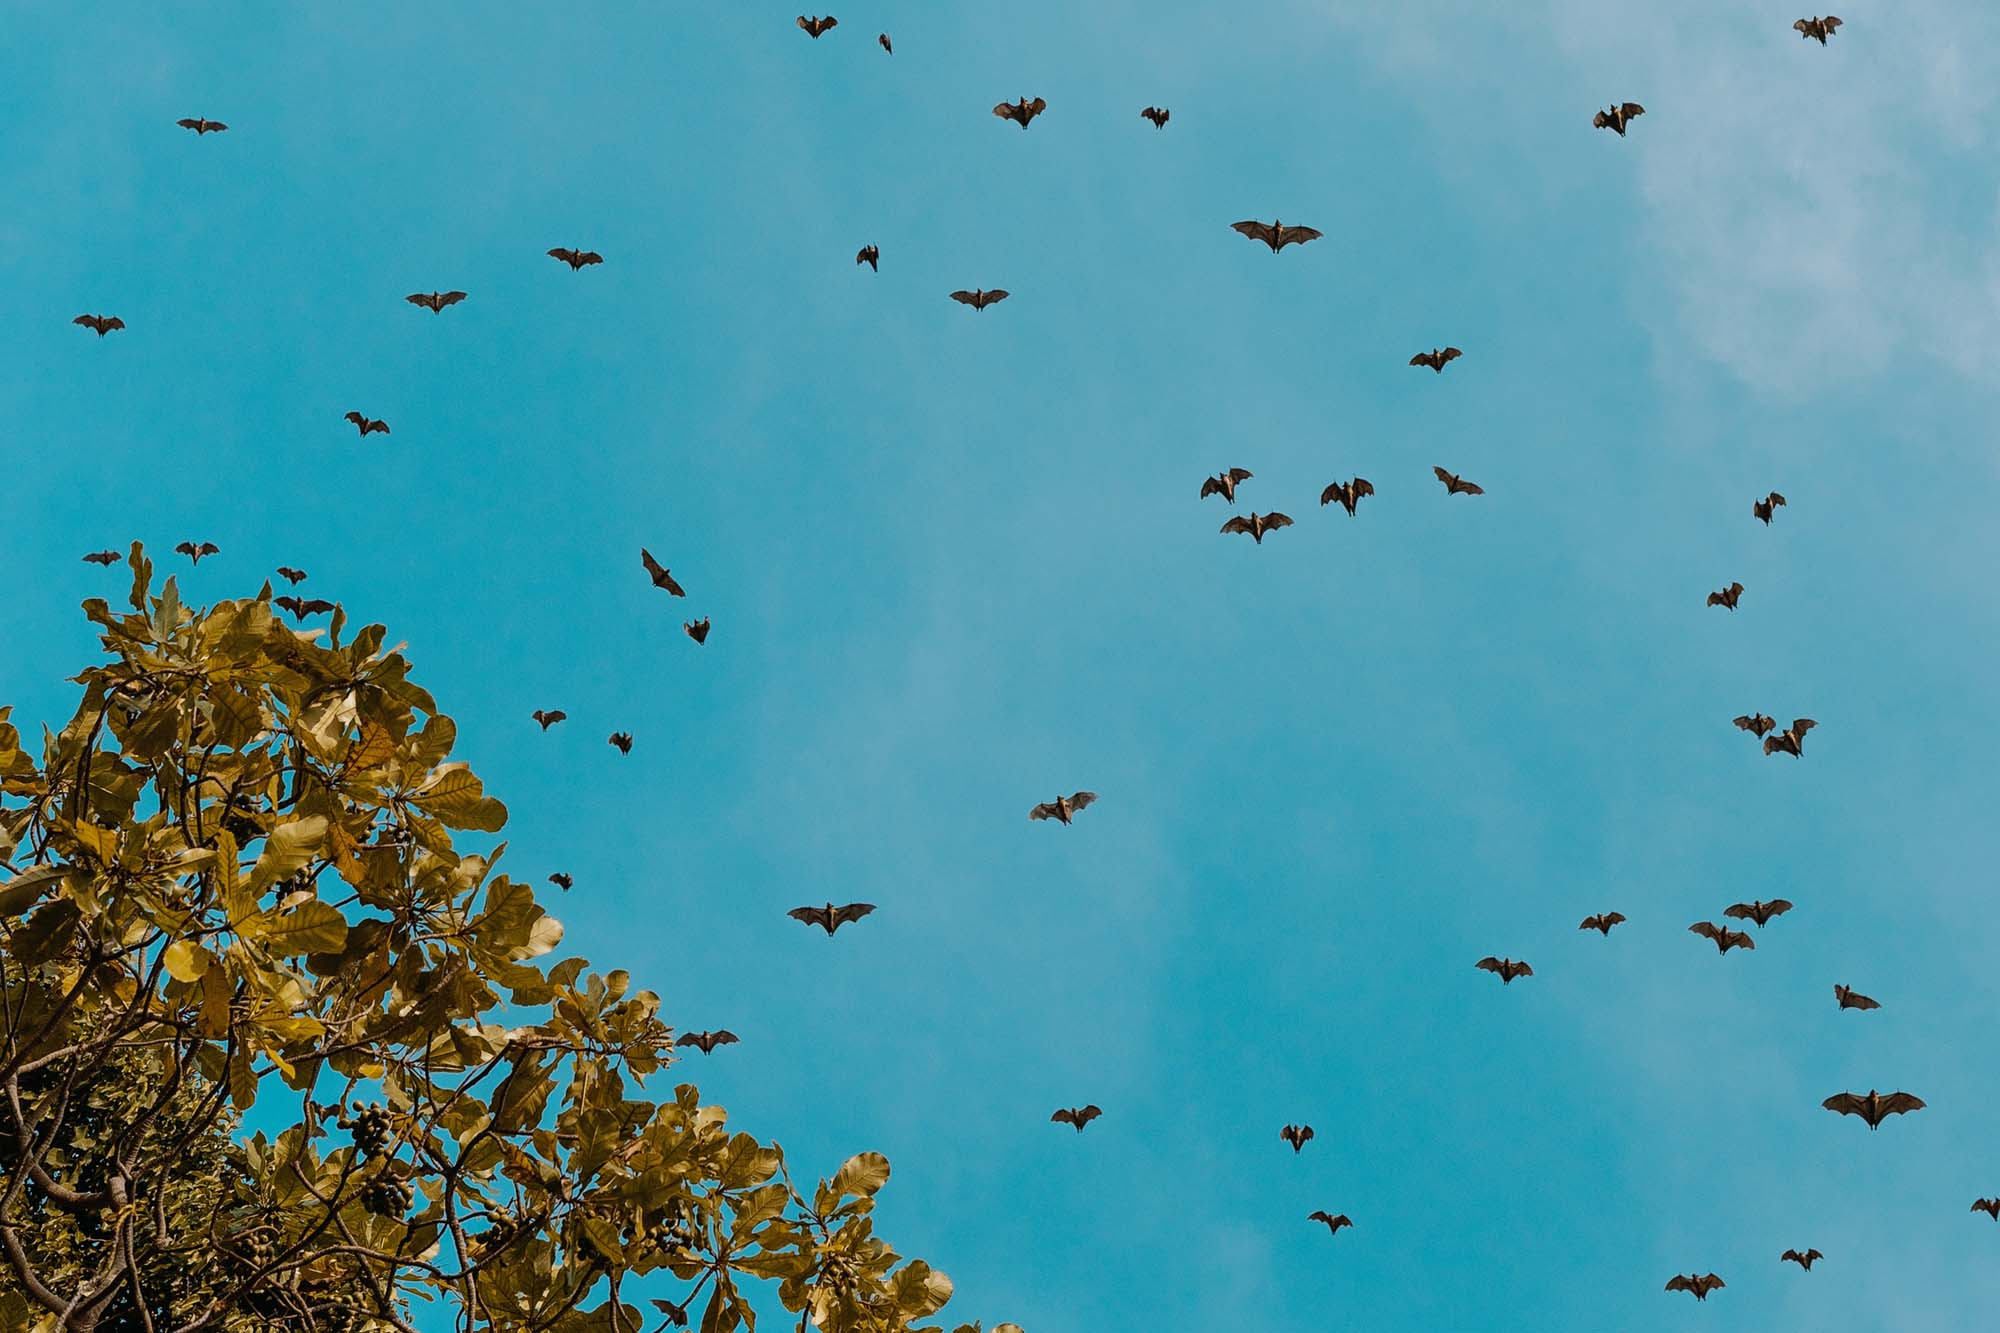 Bats flying over a blue sky and tree